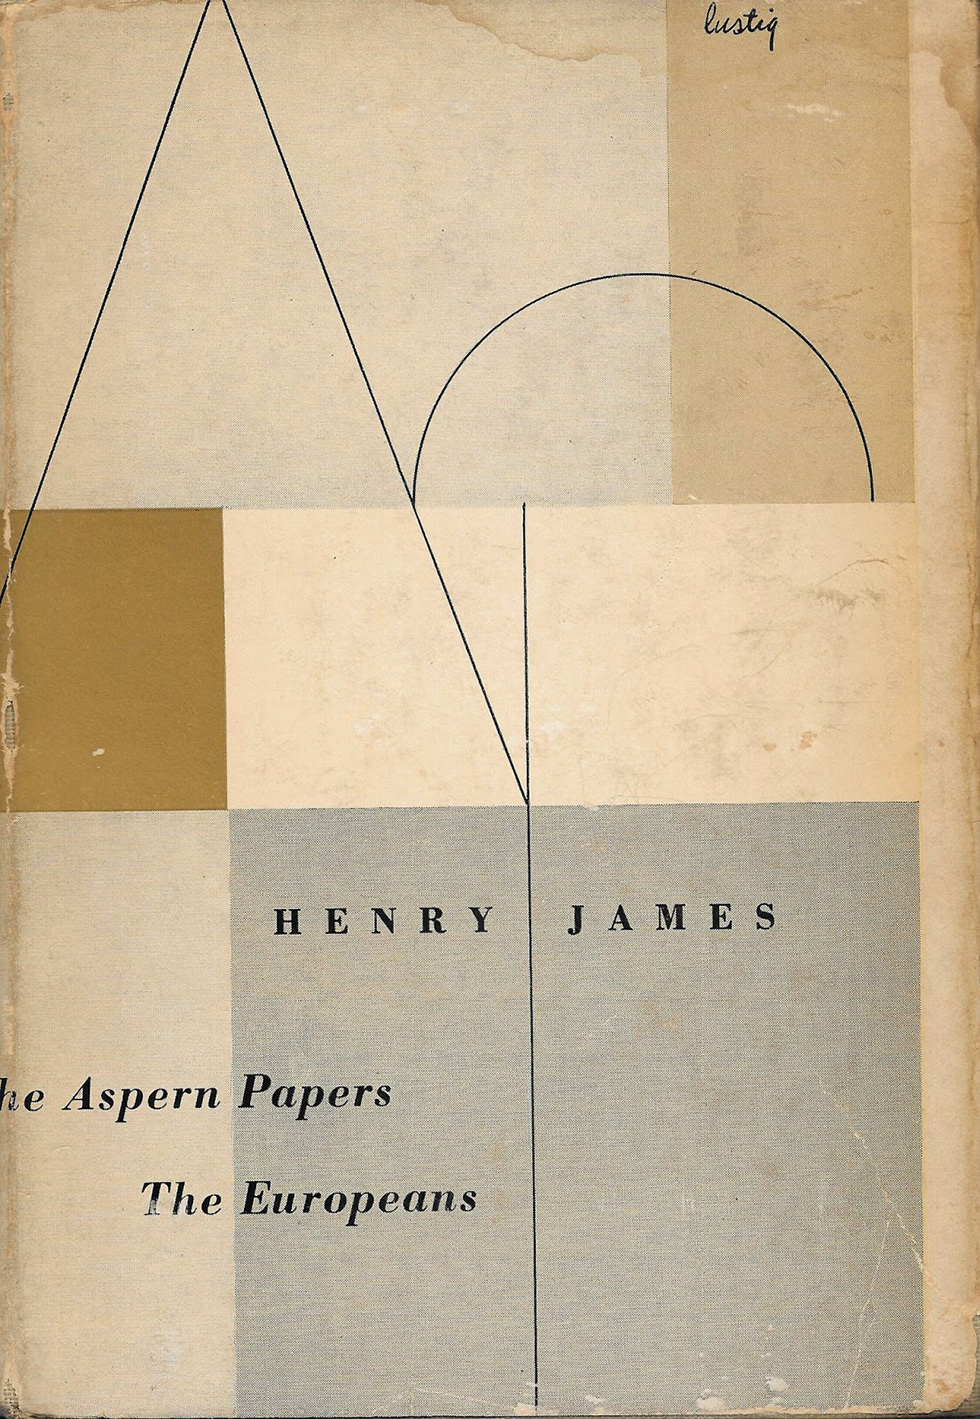 Alvin-Lustig-couverture-aspern-papers-henry-james